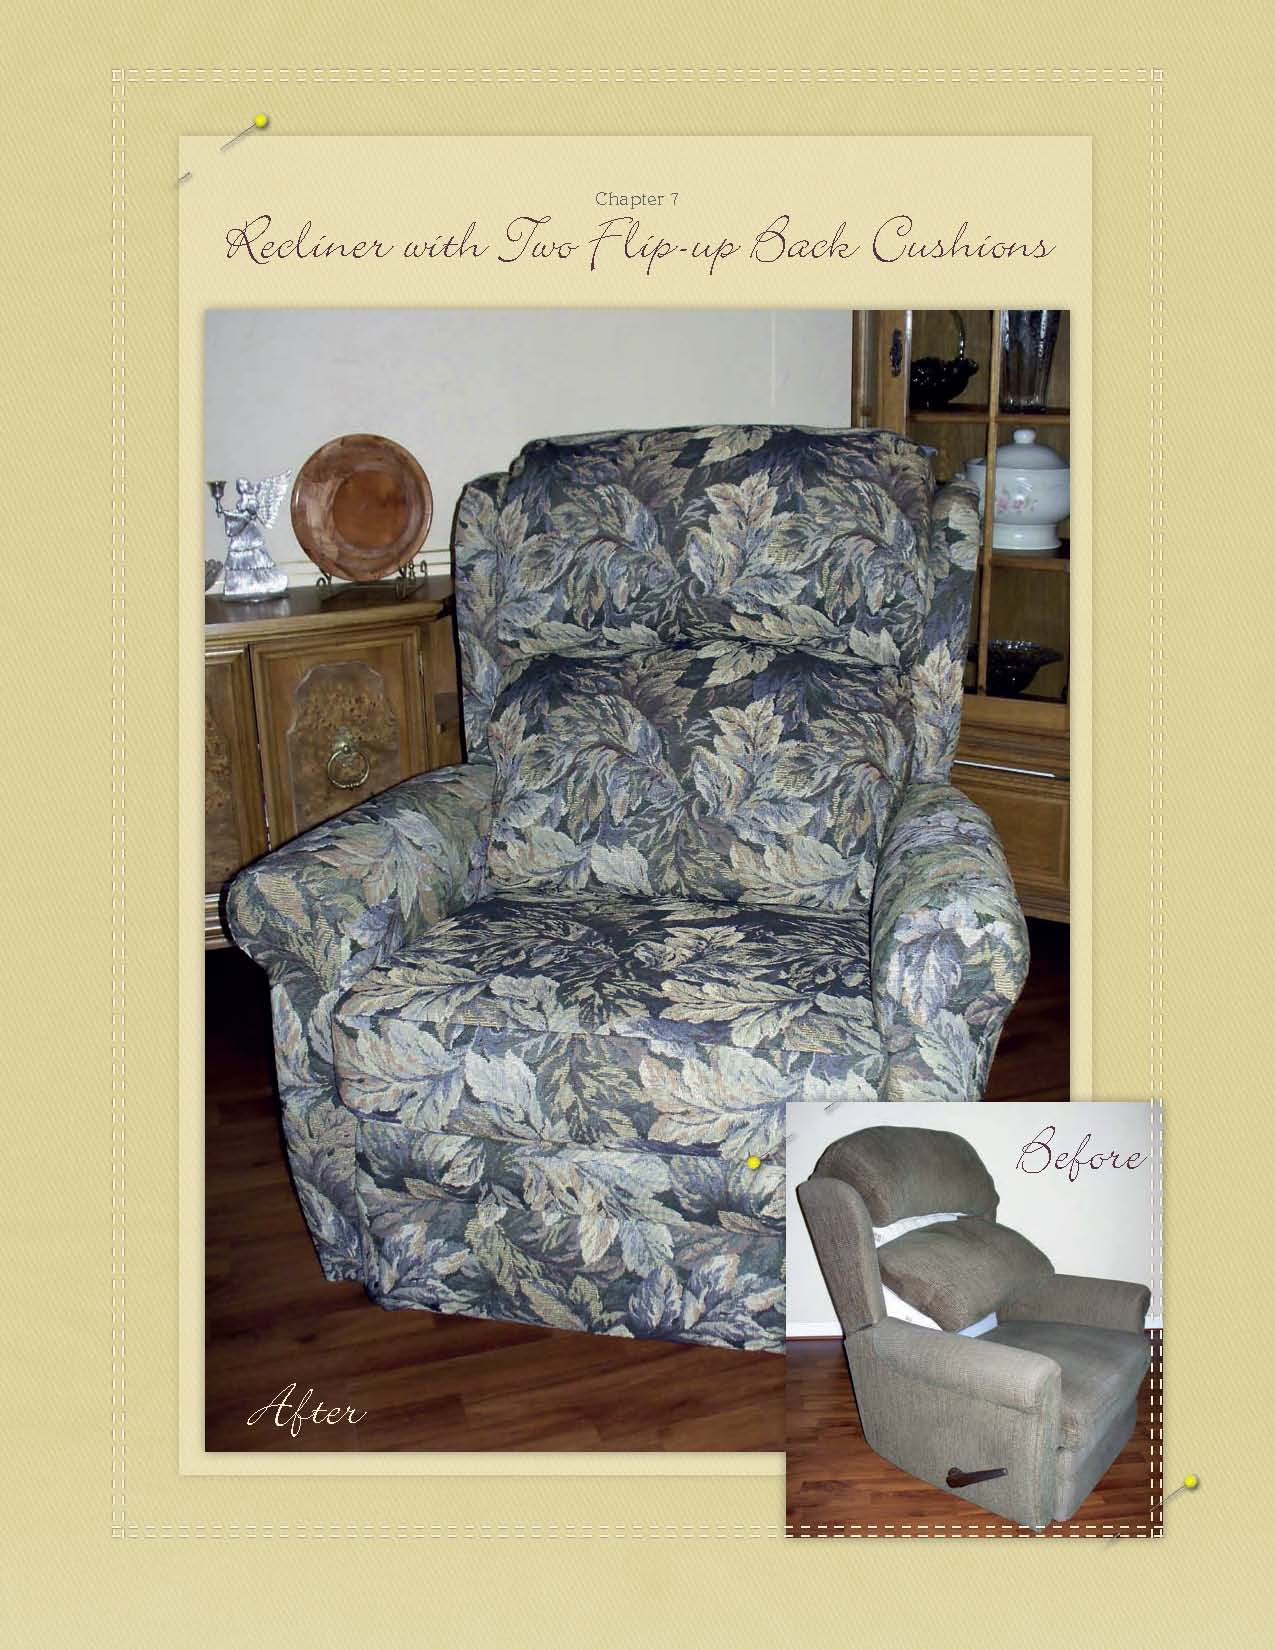 Marges Custom Slipcovers  My second book